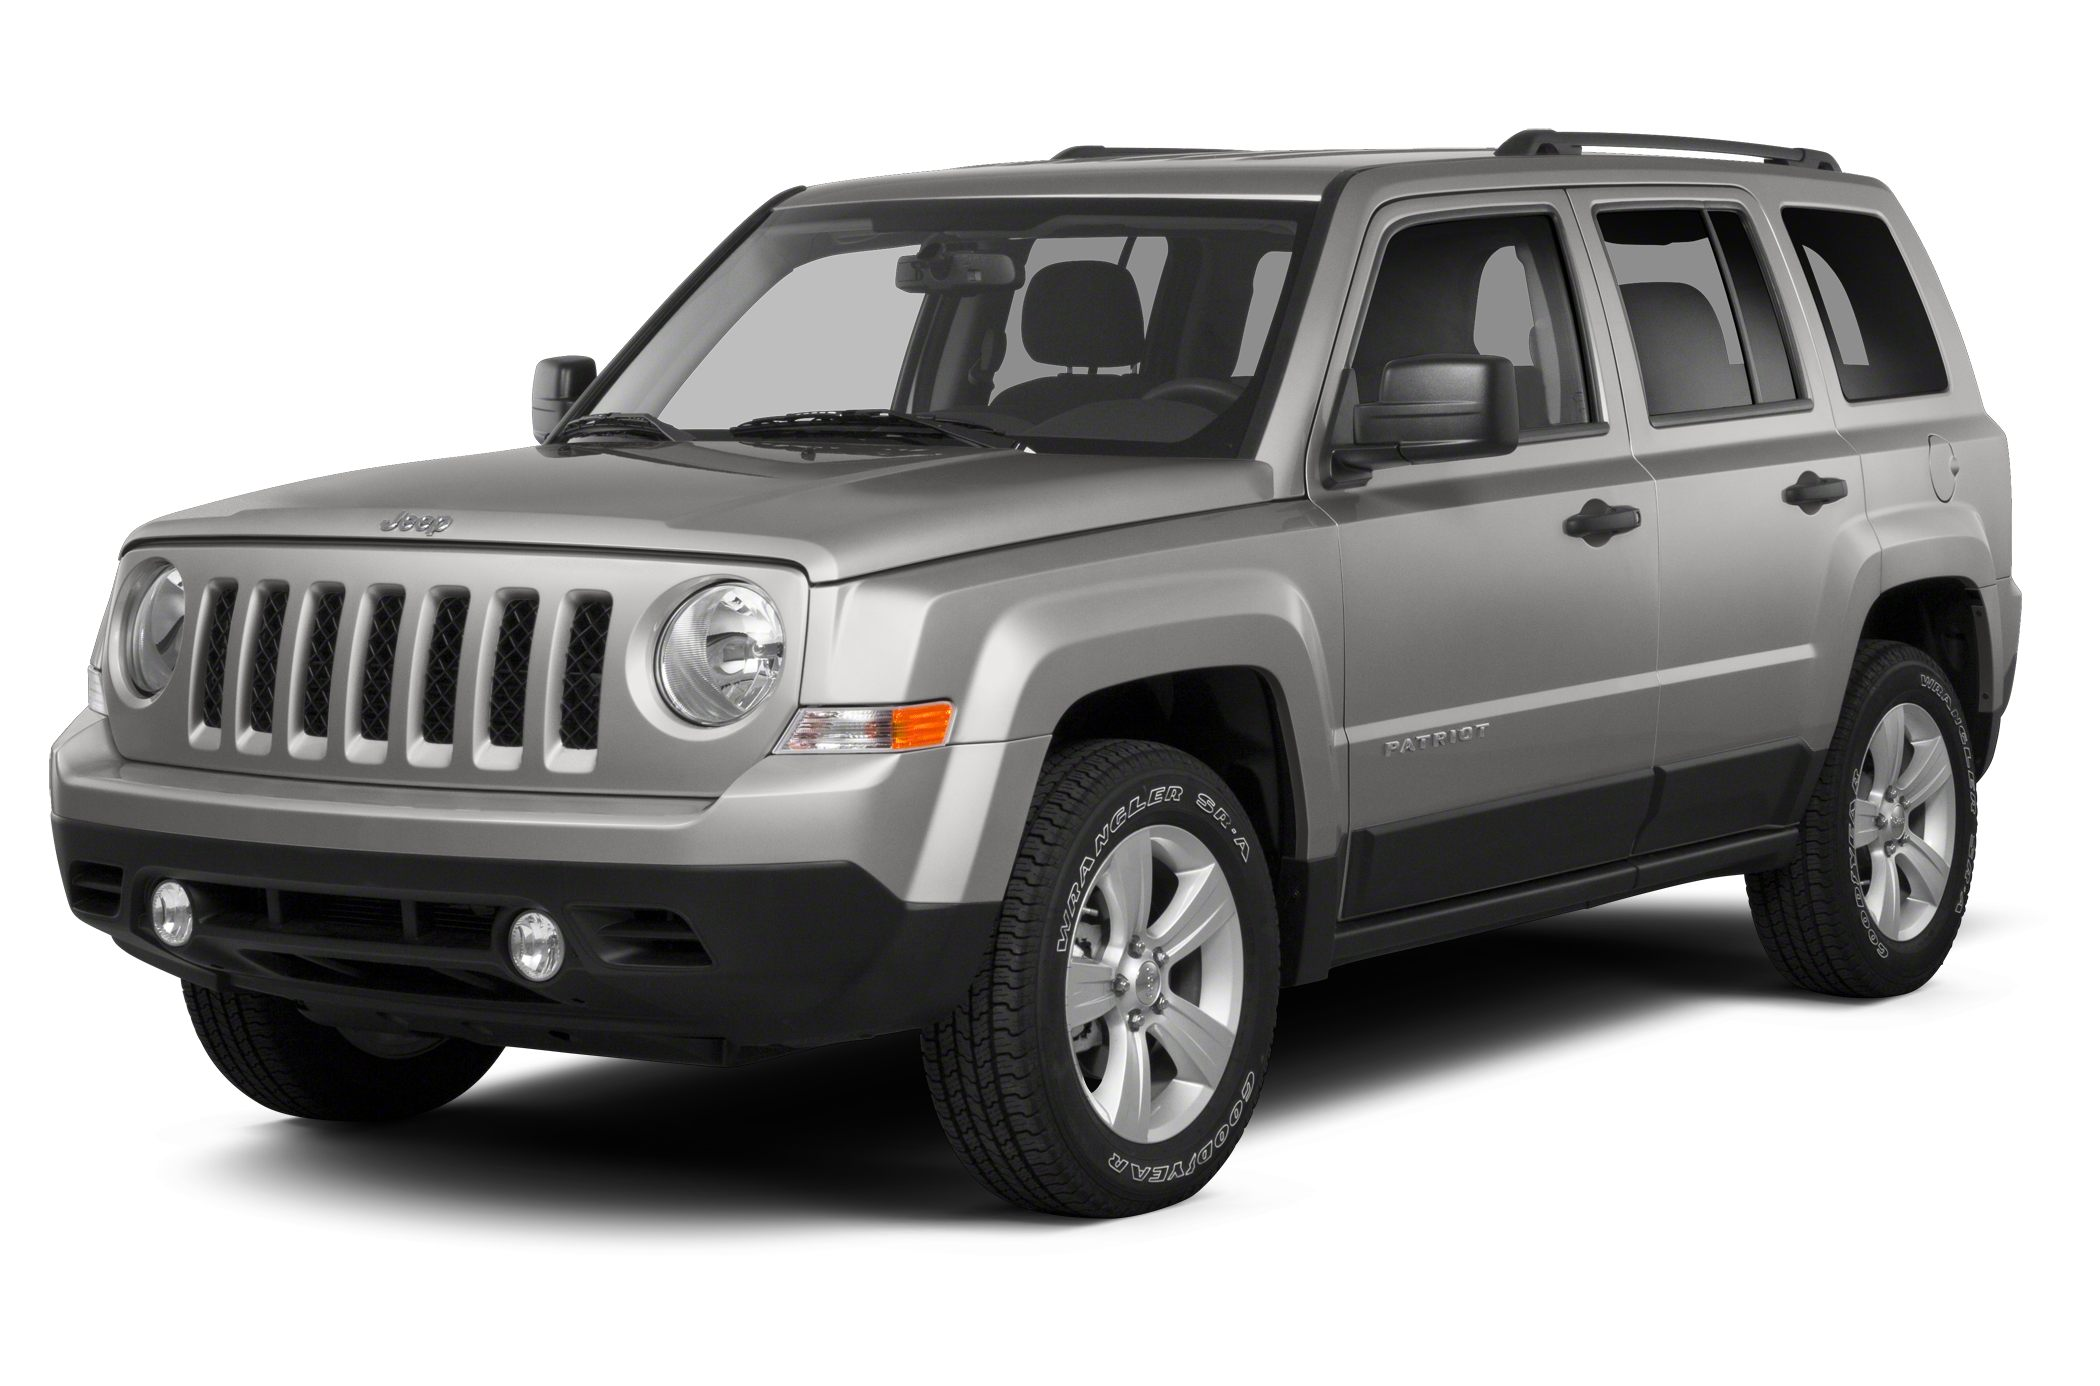 2014 jeep patriot information and photos momentcar. Black Bedroom Furniture Sets. Home Design Ideas